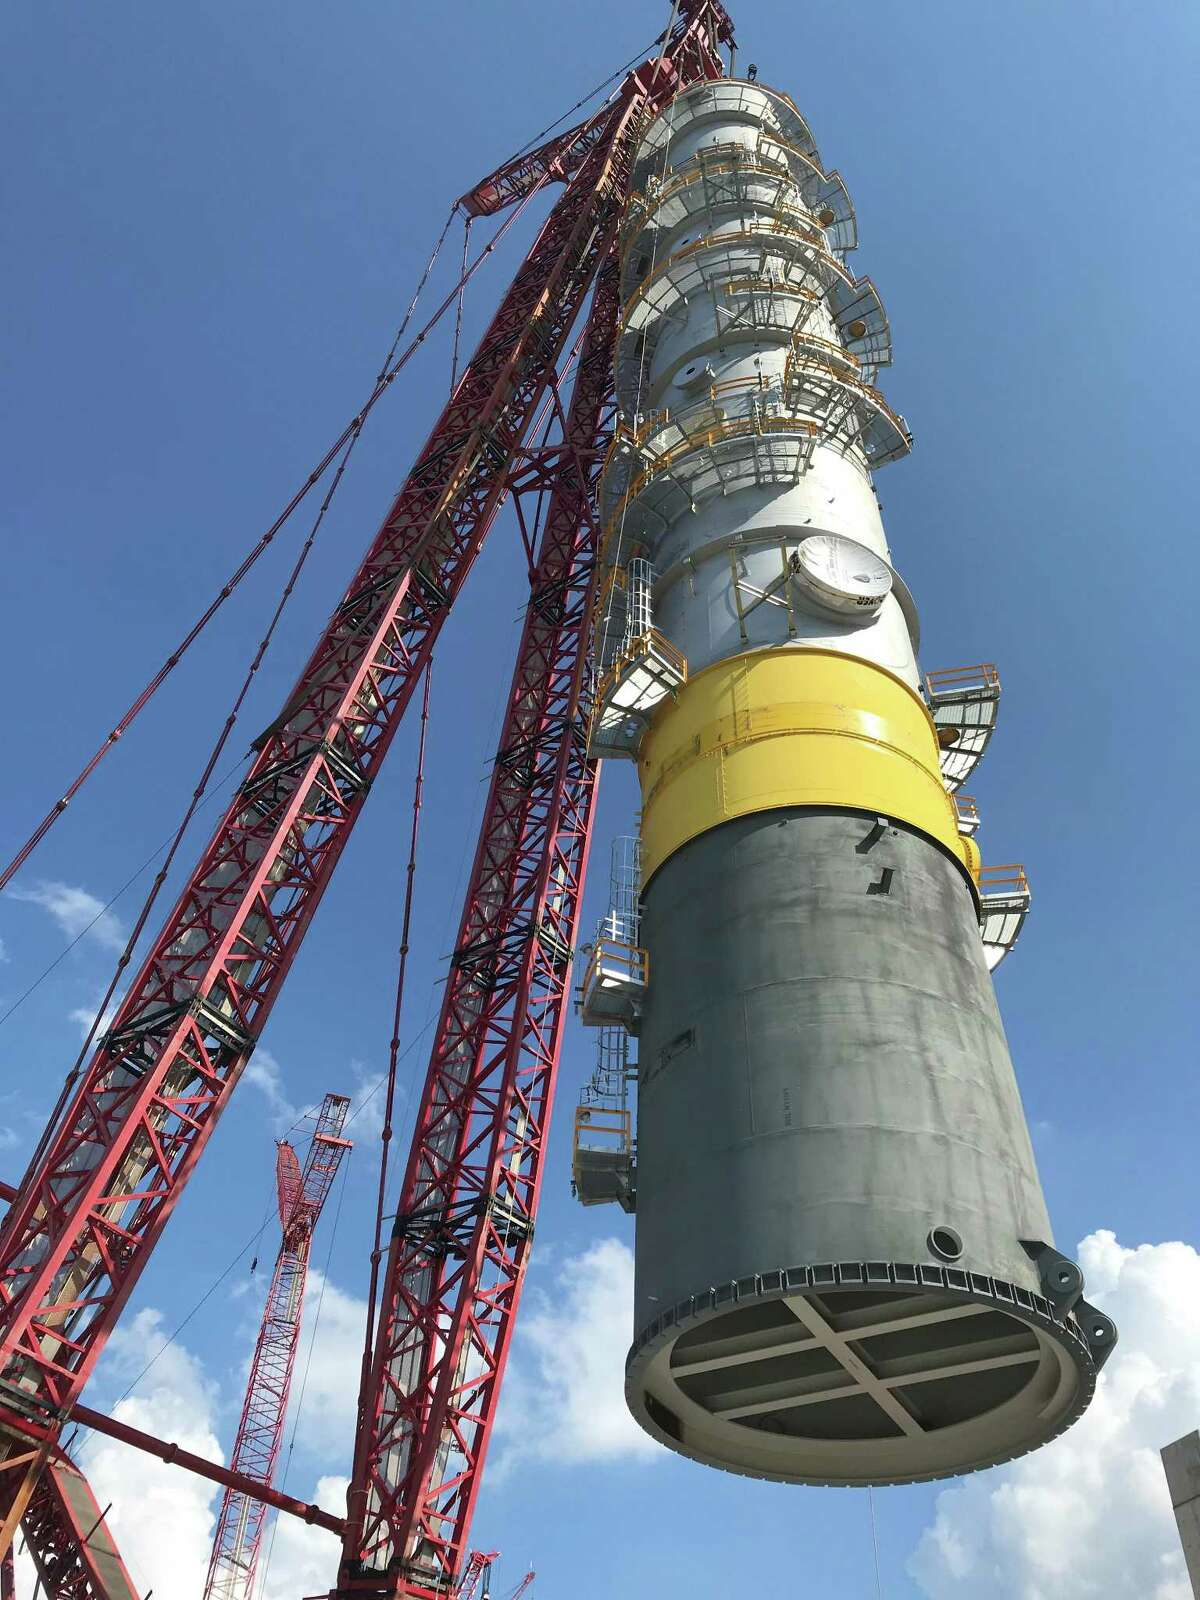 Shell's petrochemicals unit recently installed a 285-foot cooling and condensation tower at its petrochemicals complex now under construction in Pennsylvania.